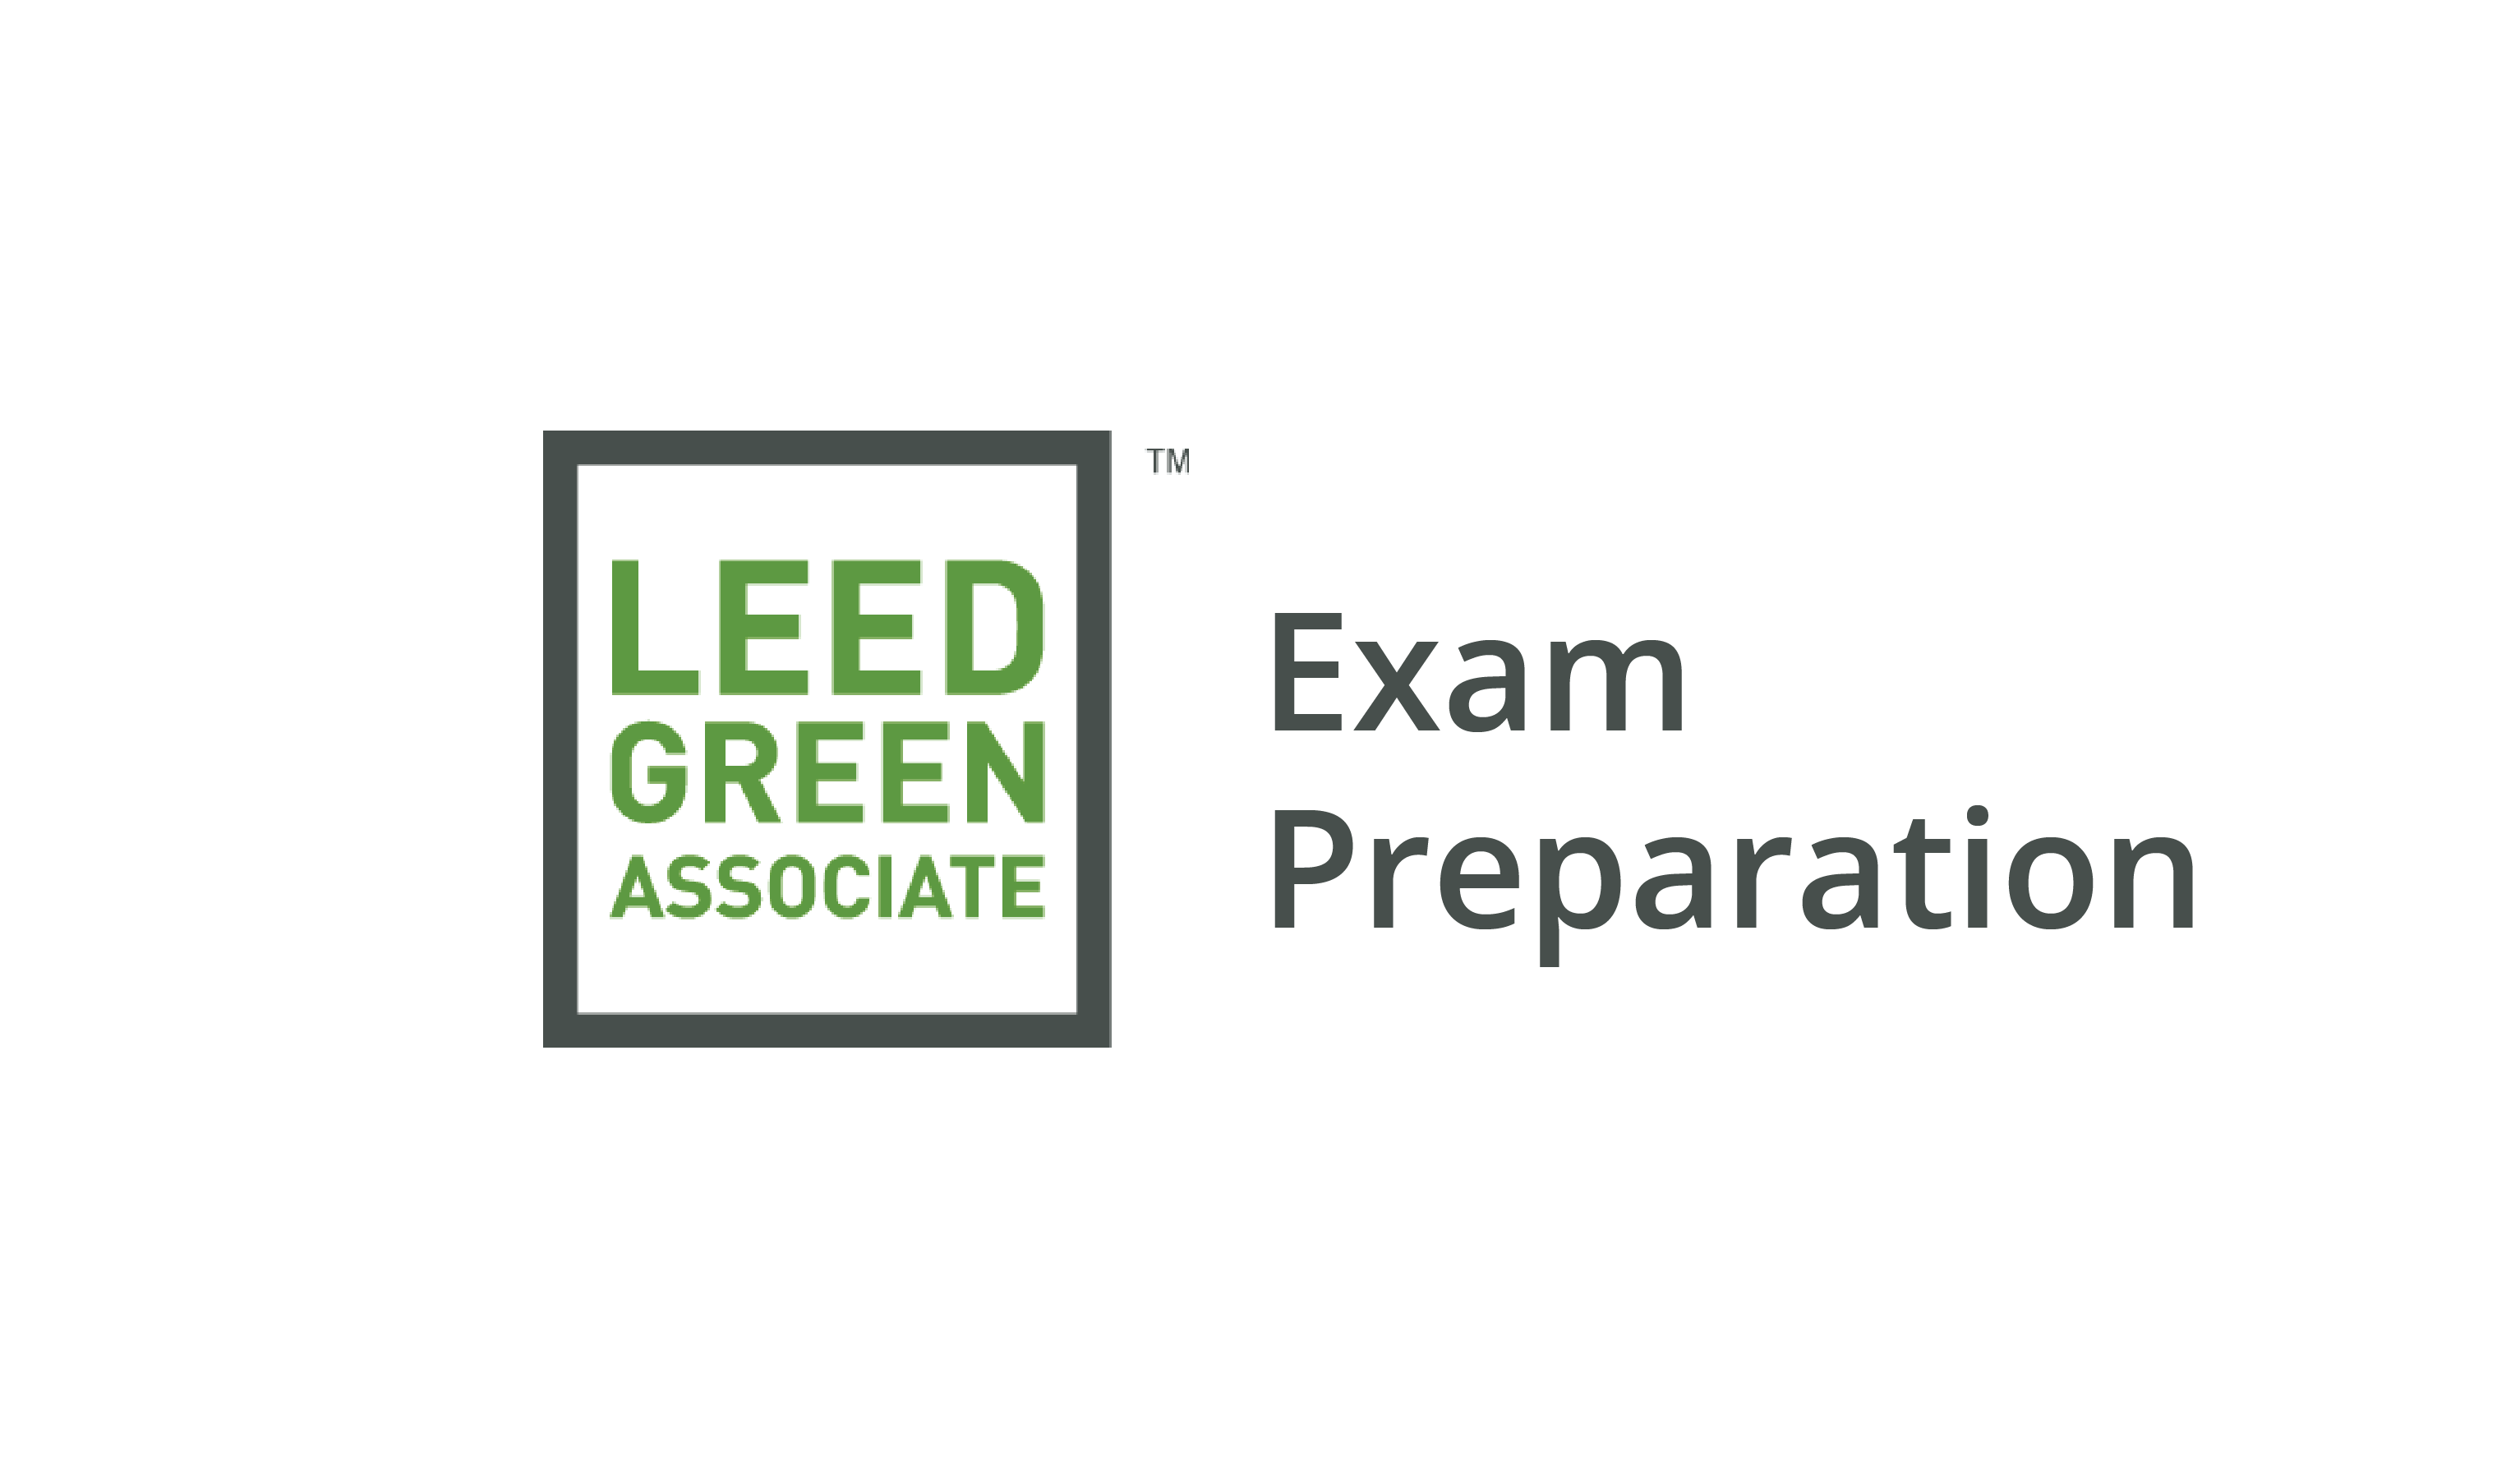 Green ideas to host a live leed green associate training seminar earn the credentials necessary to take your career to the next level by attending green ideas leed green associate v4 exam prep seminar in phoenix xflitez Images